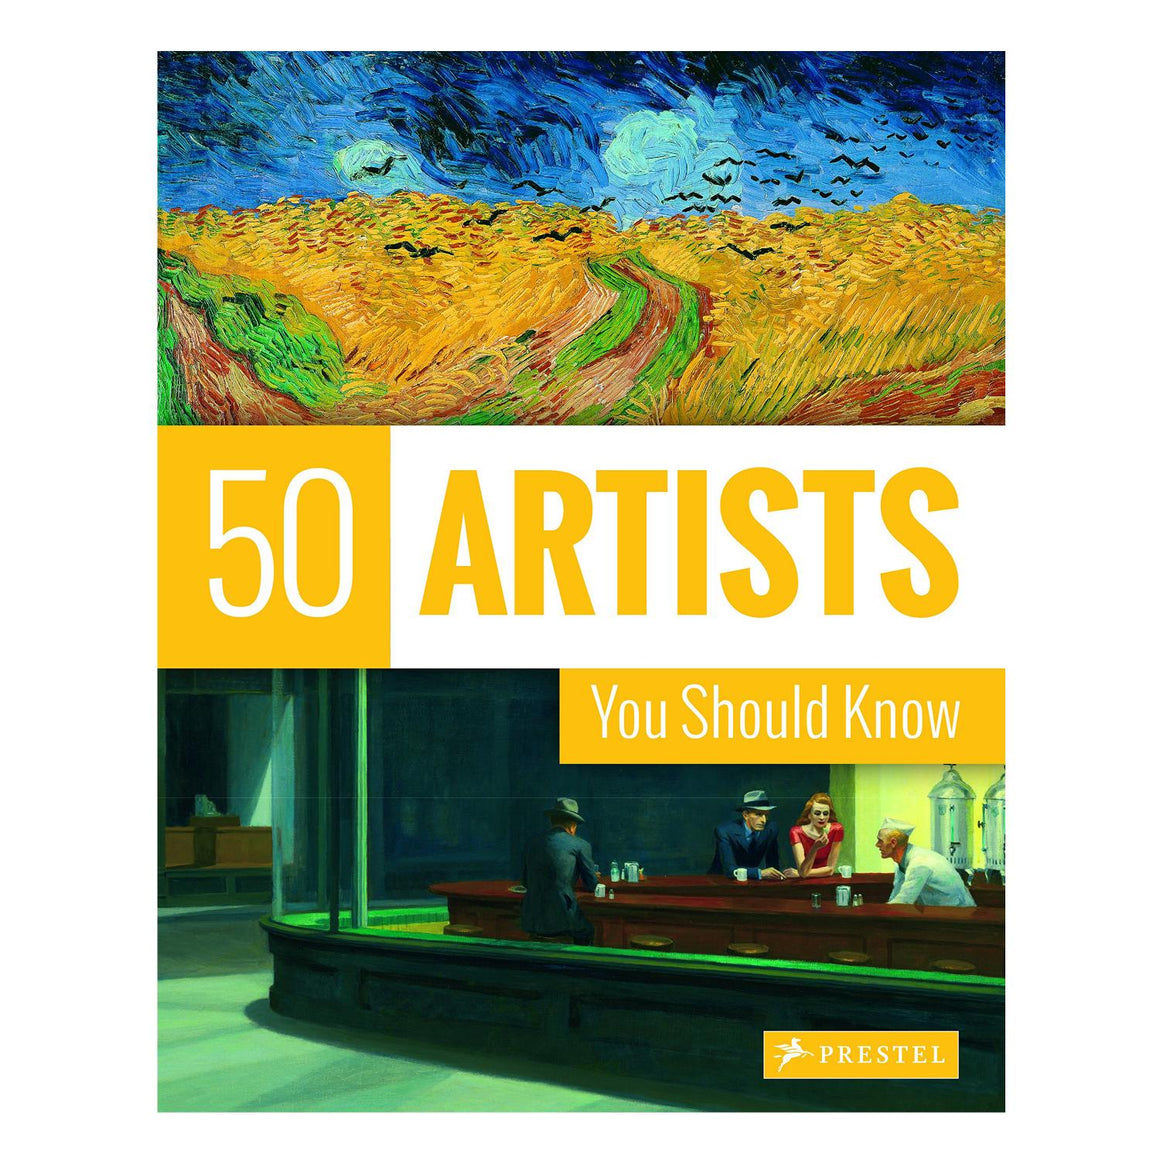 50 Artists You Should Know | Author: Thomas Köster